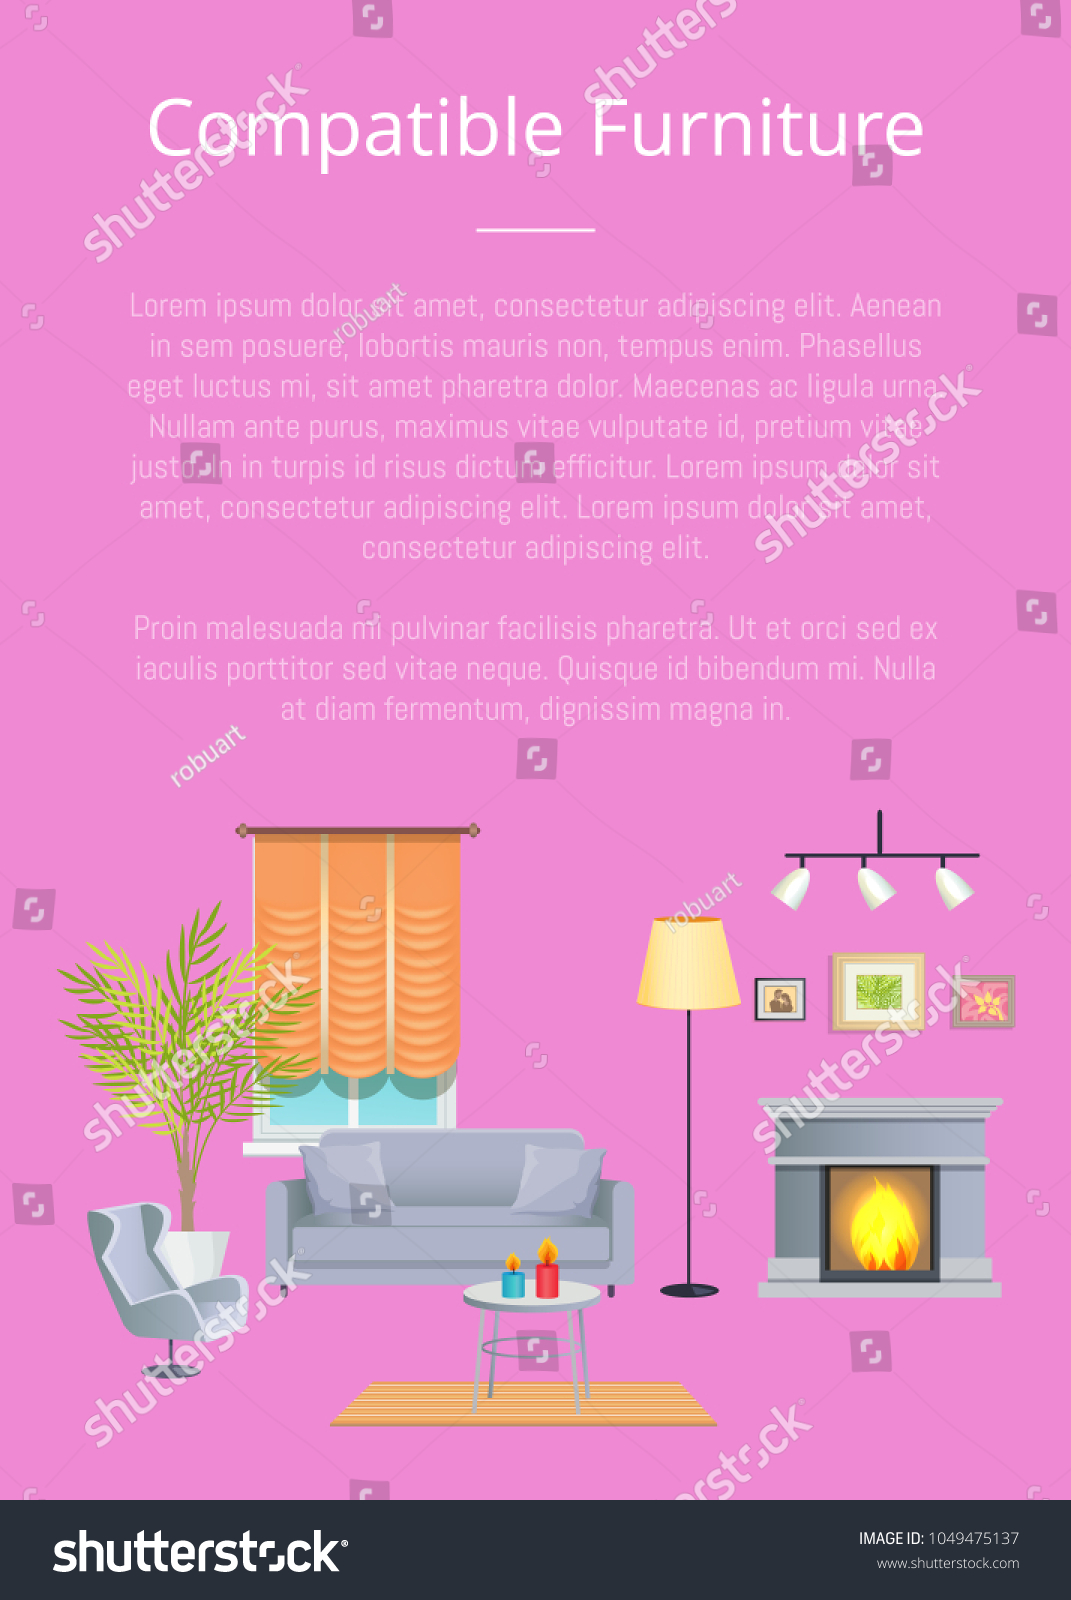 compatible furniture. Compatible Furniture Poster With Headline And Text Sample, Sofa Table Cup Candles B